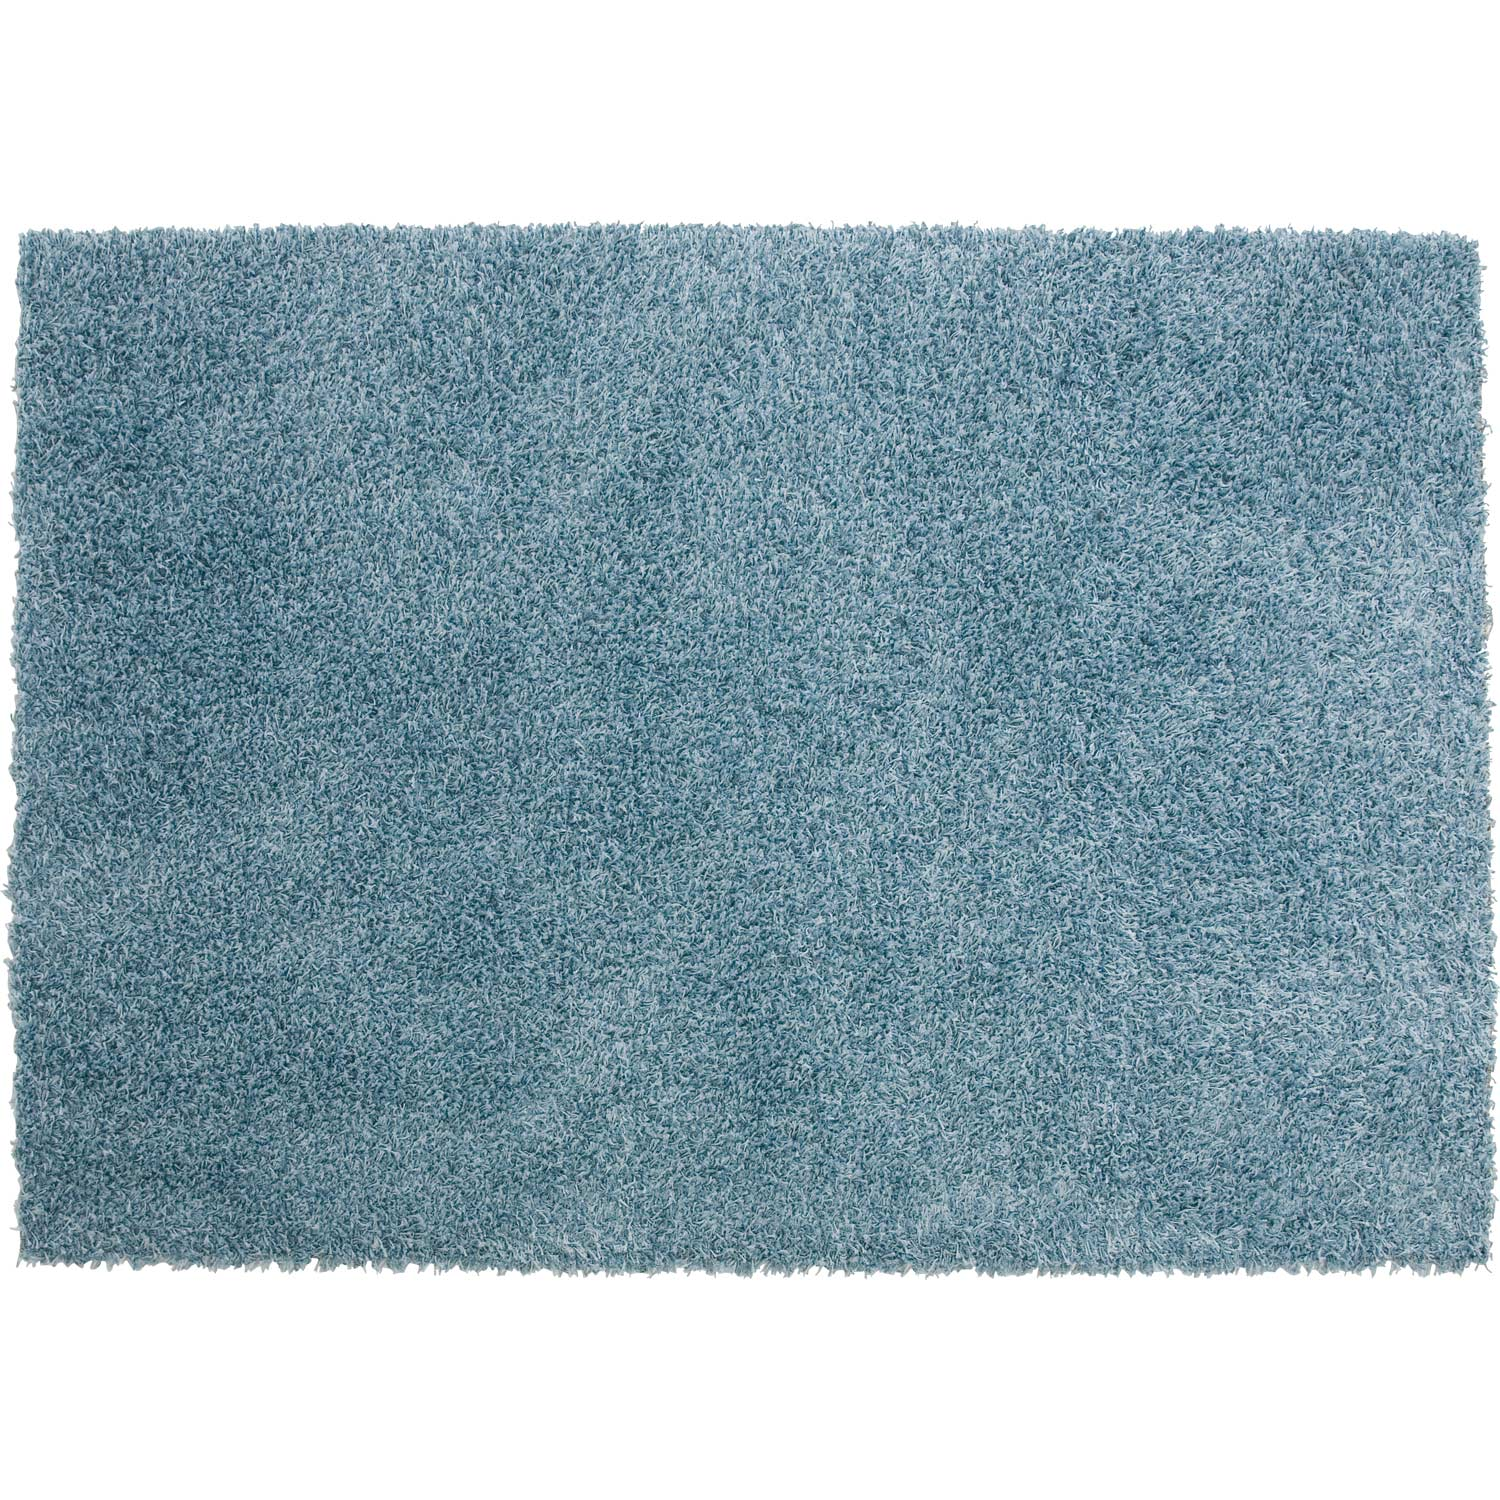 carrelage design tapis bleu canard moderne design pour carrelage de sol et rev tement de tapis. Black Bedroom Furniture Sets. Home Design Ideas